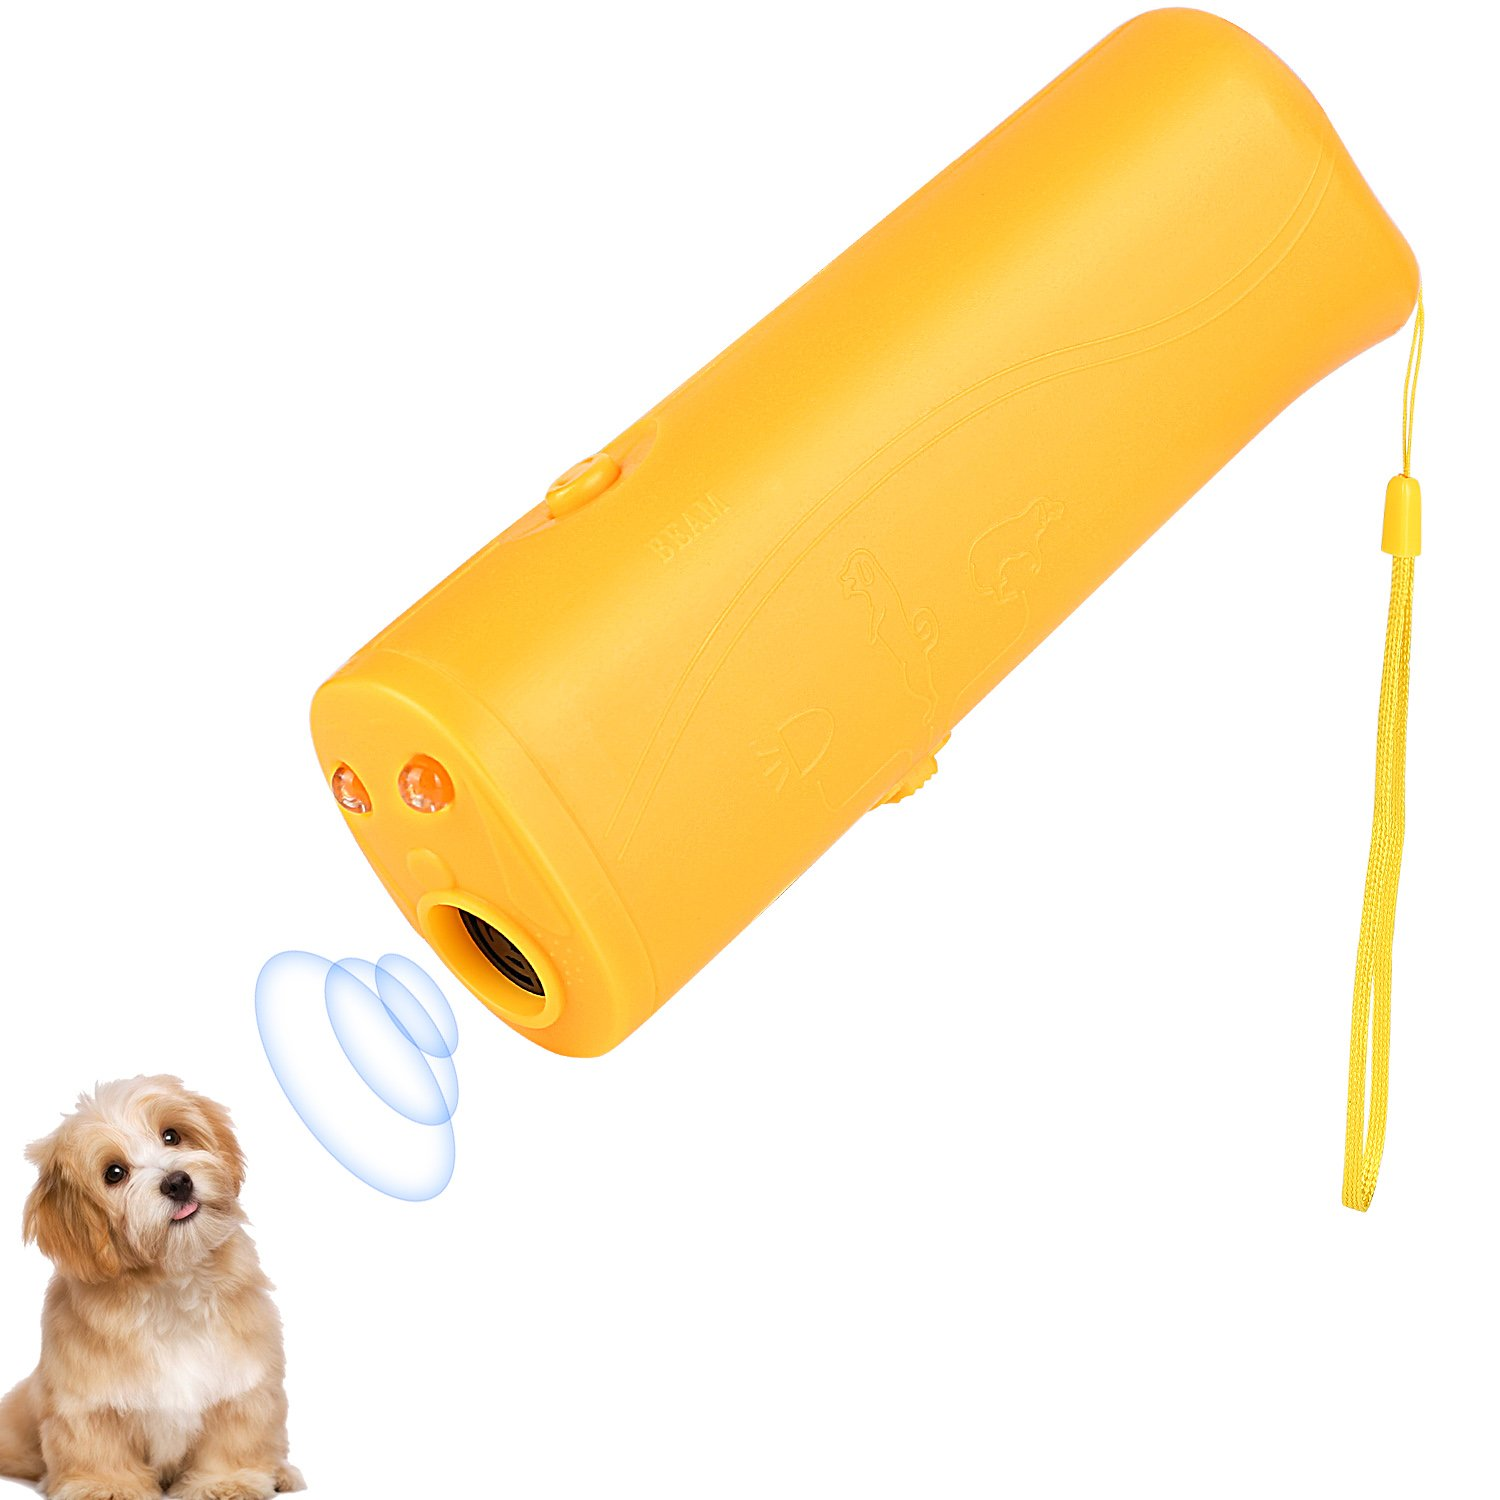 ONSON Ultrasonic Dog Repeller and Trainer Device 3 in 1 LED Pet Anti Barking Stop Bark Handheld (Trainer Device)